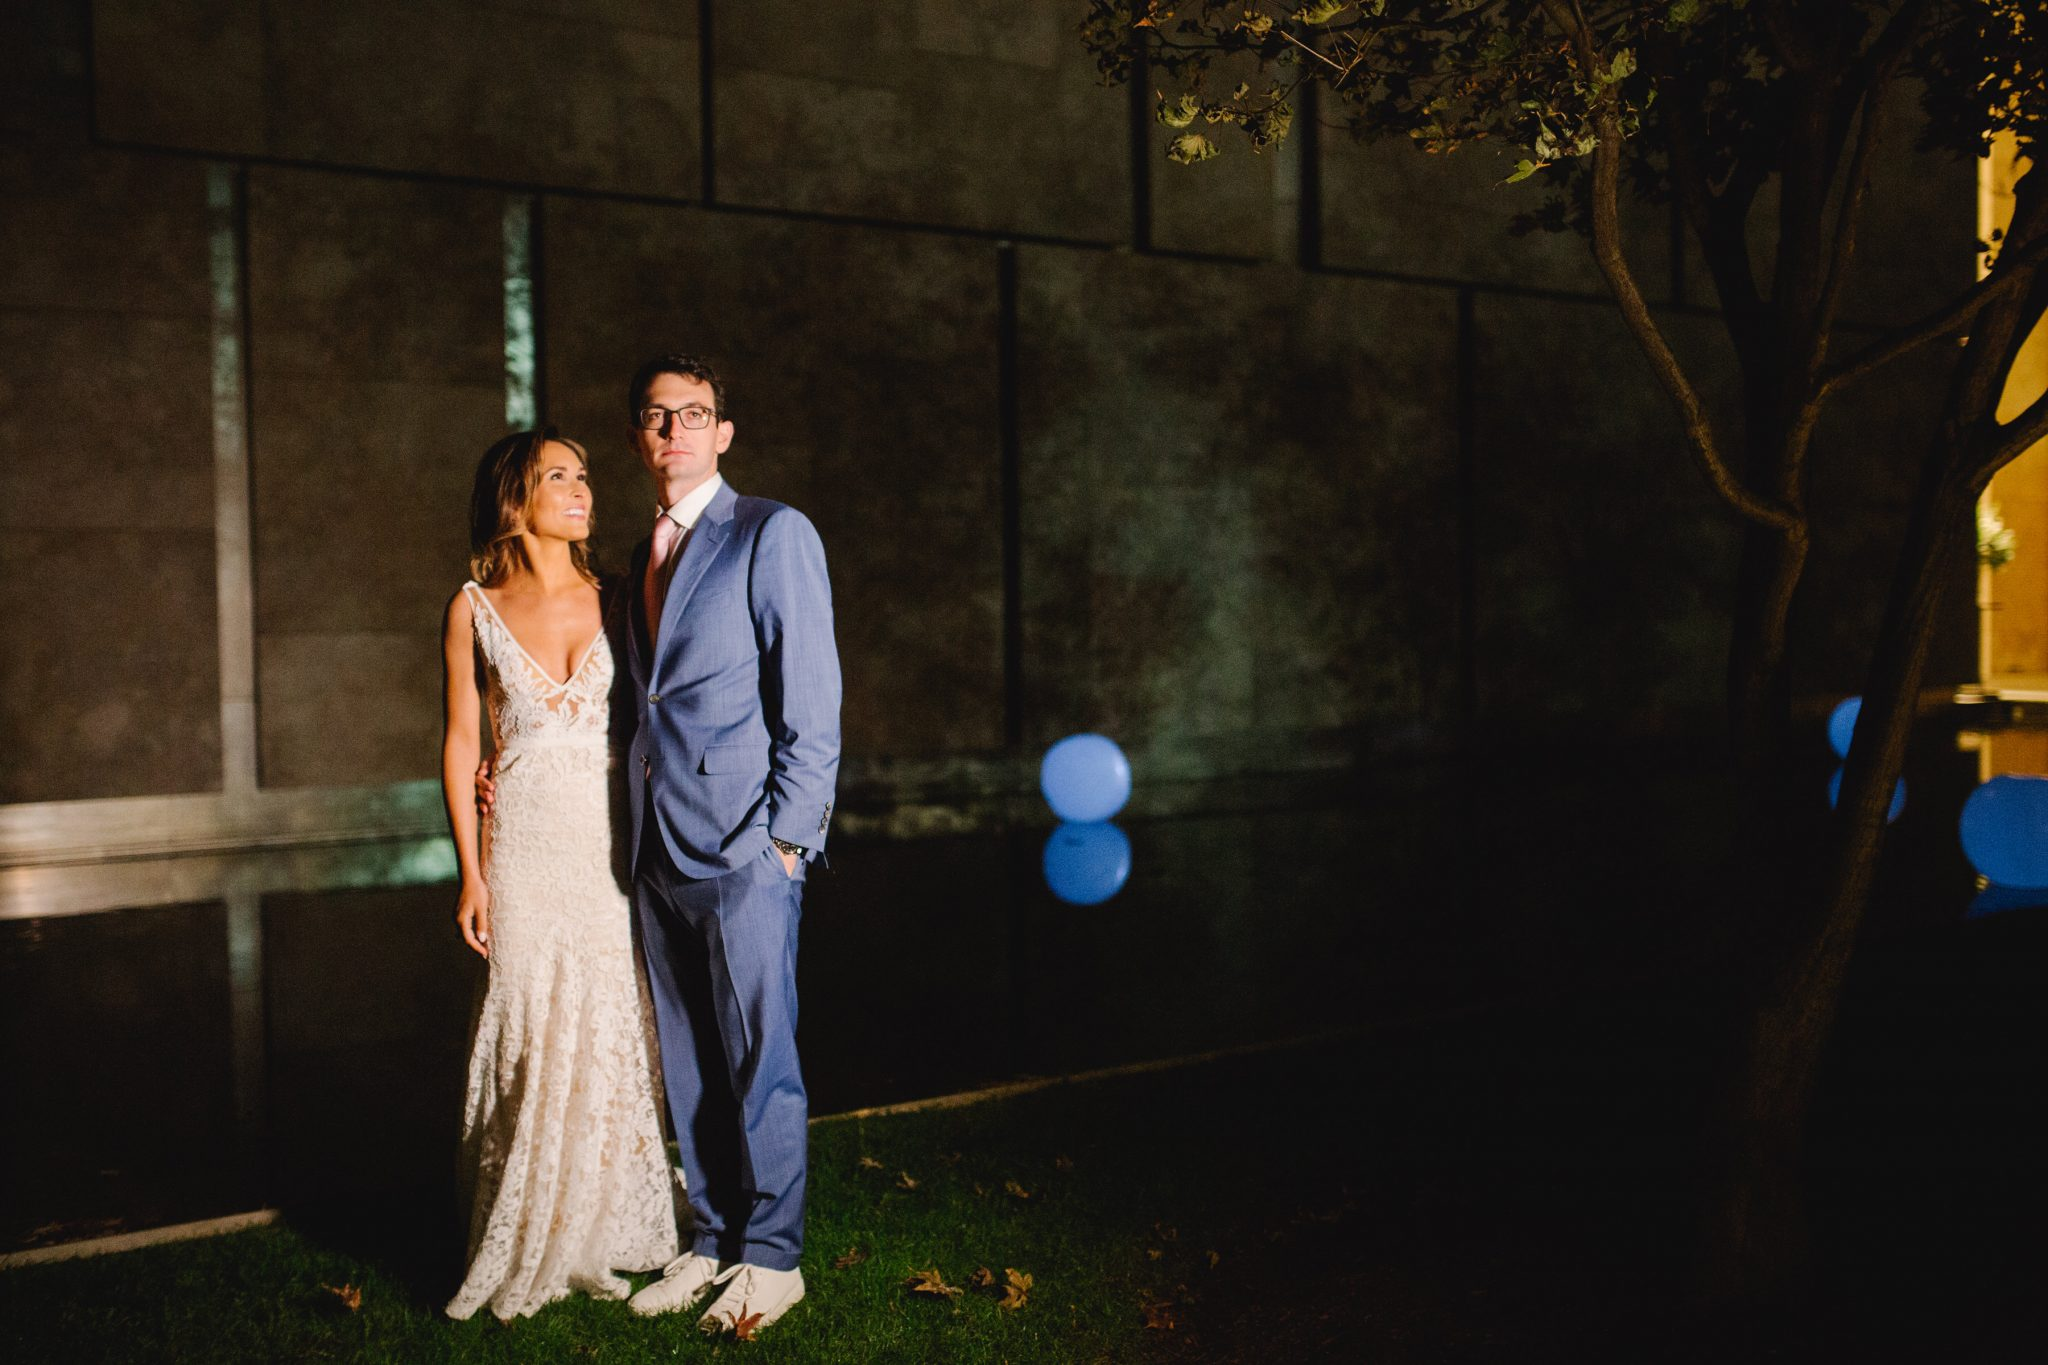 Fall Wedding at The Barnes Foundation in Philadelphia | www.thestyledbride.com